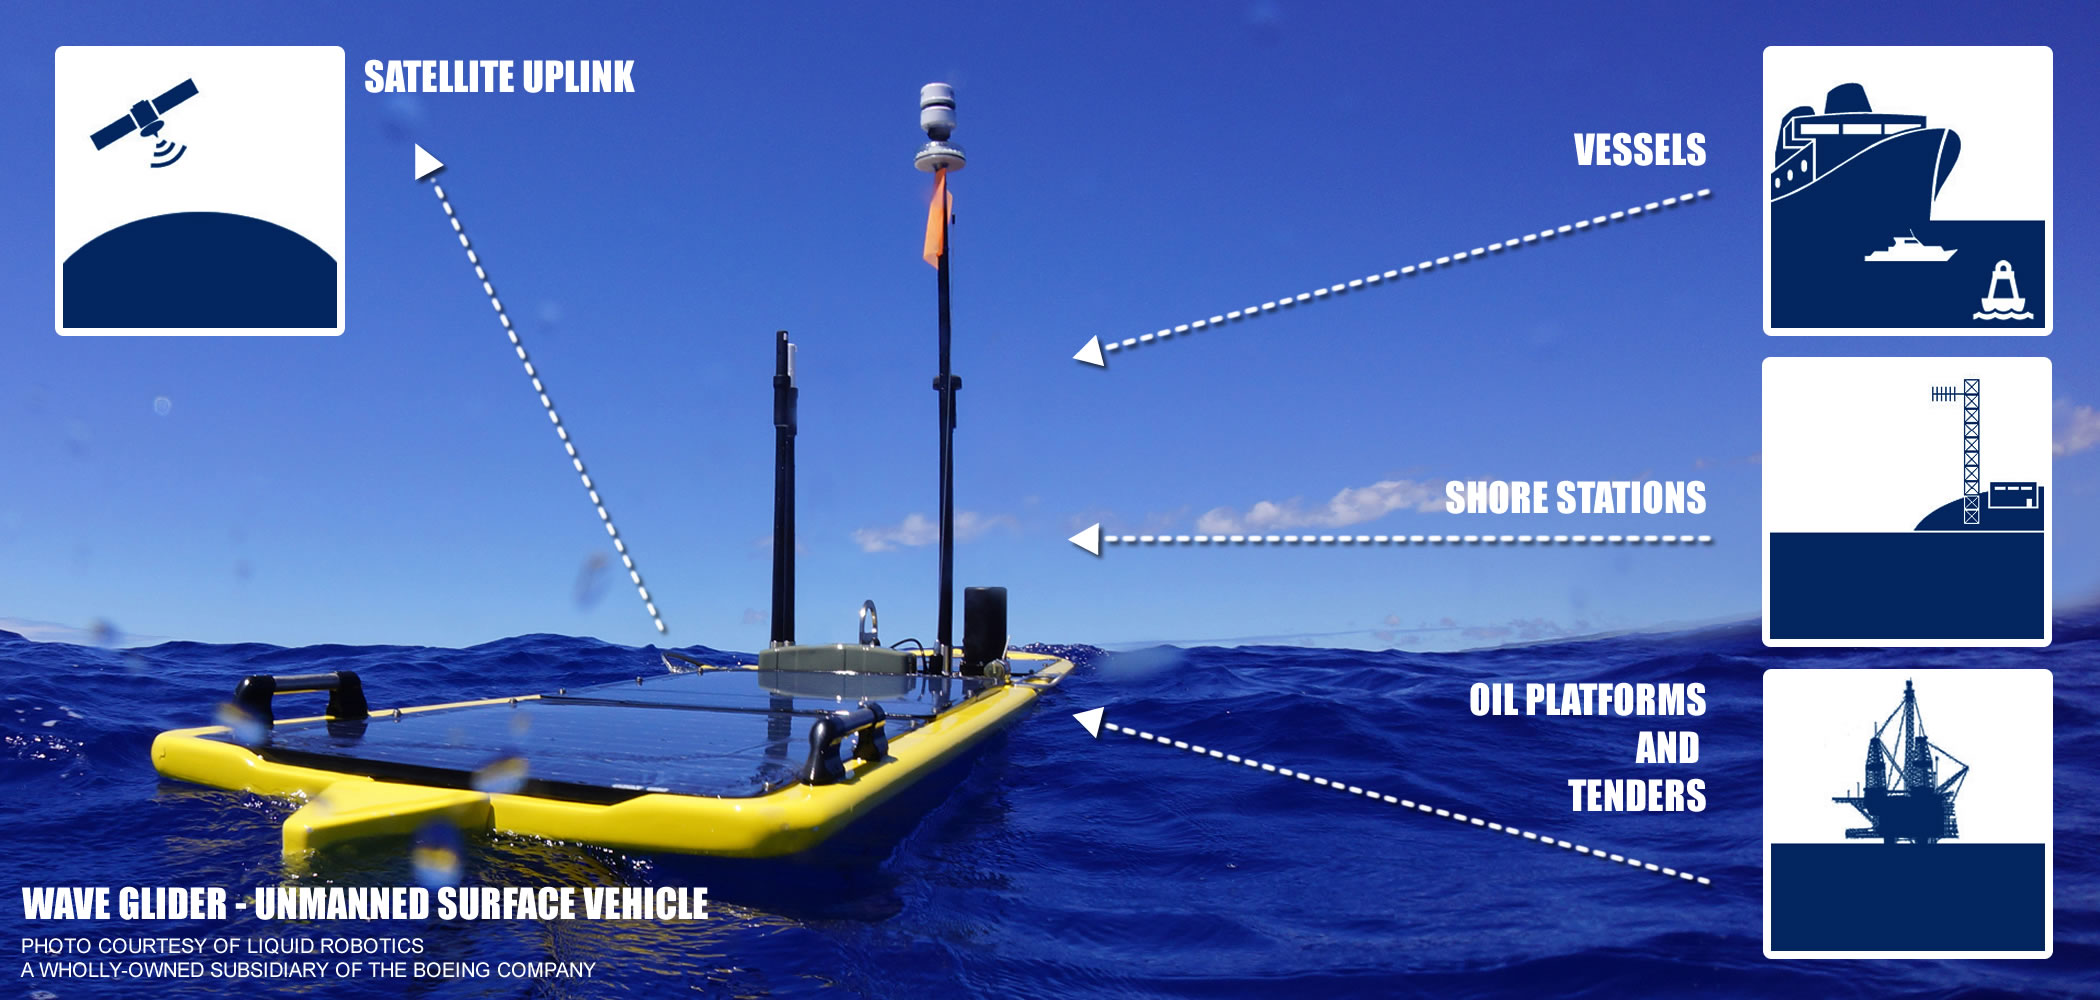 SF162SV-T3 Dual AIS Receiver for Unmanned Surface Vehicles (USV), shown on WaveGlider USV by Liquid Robotics, Inc.